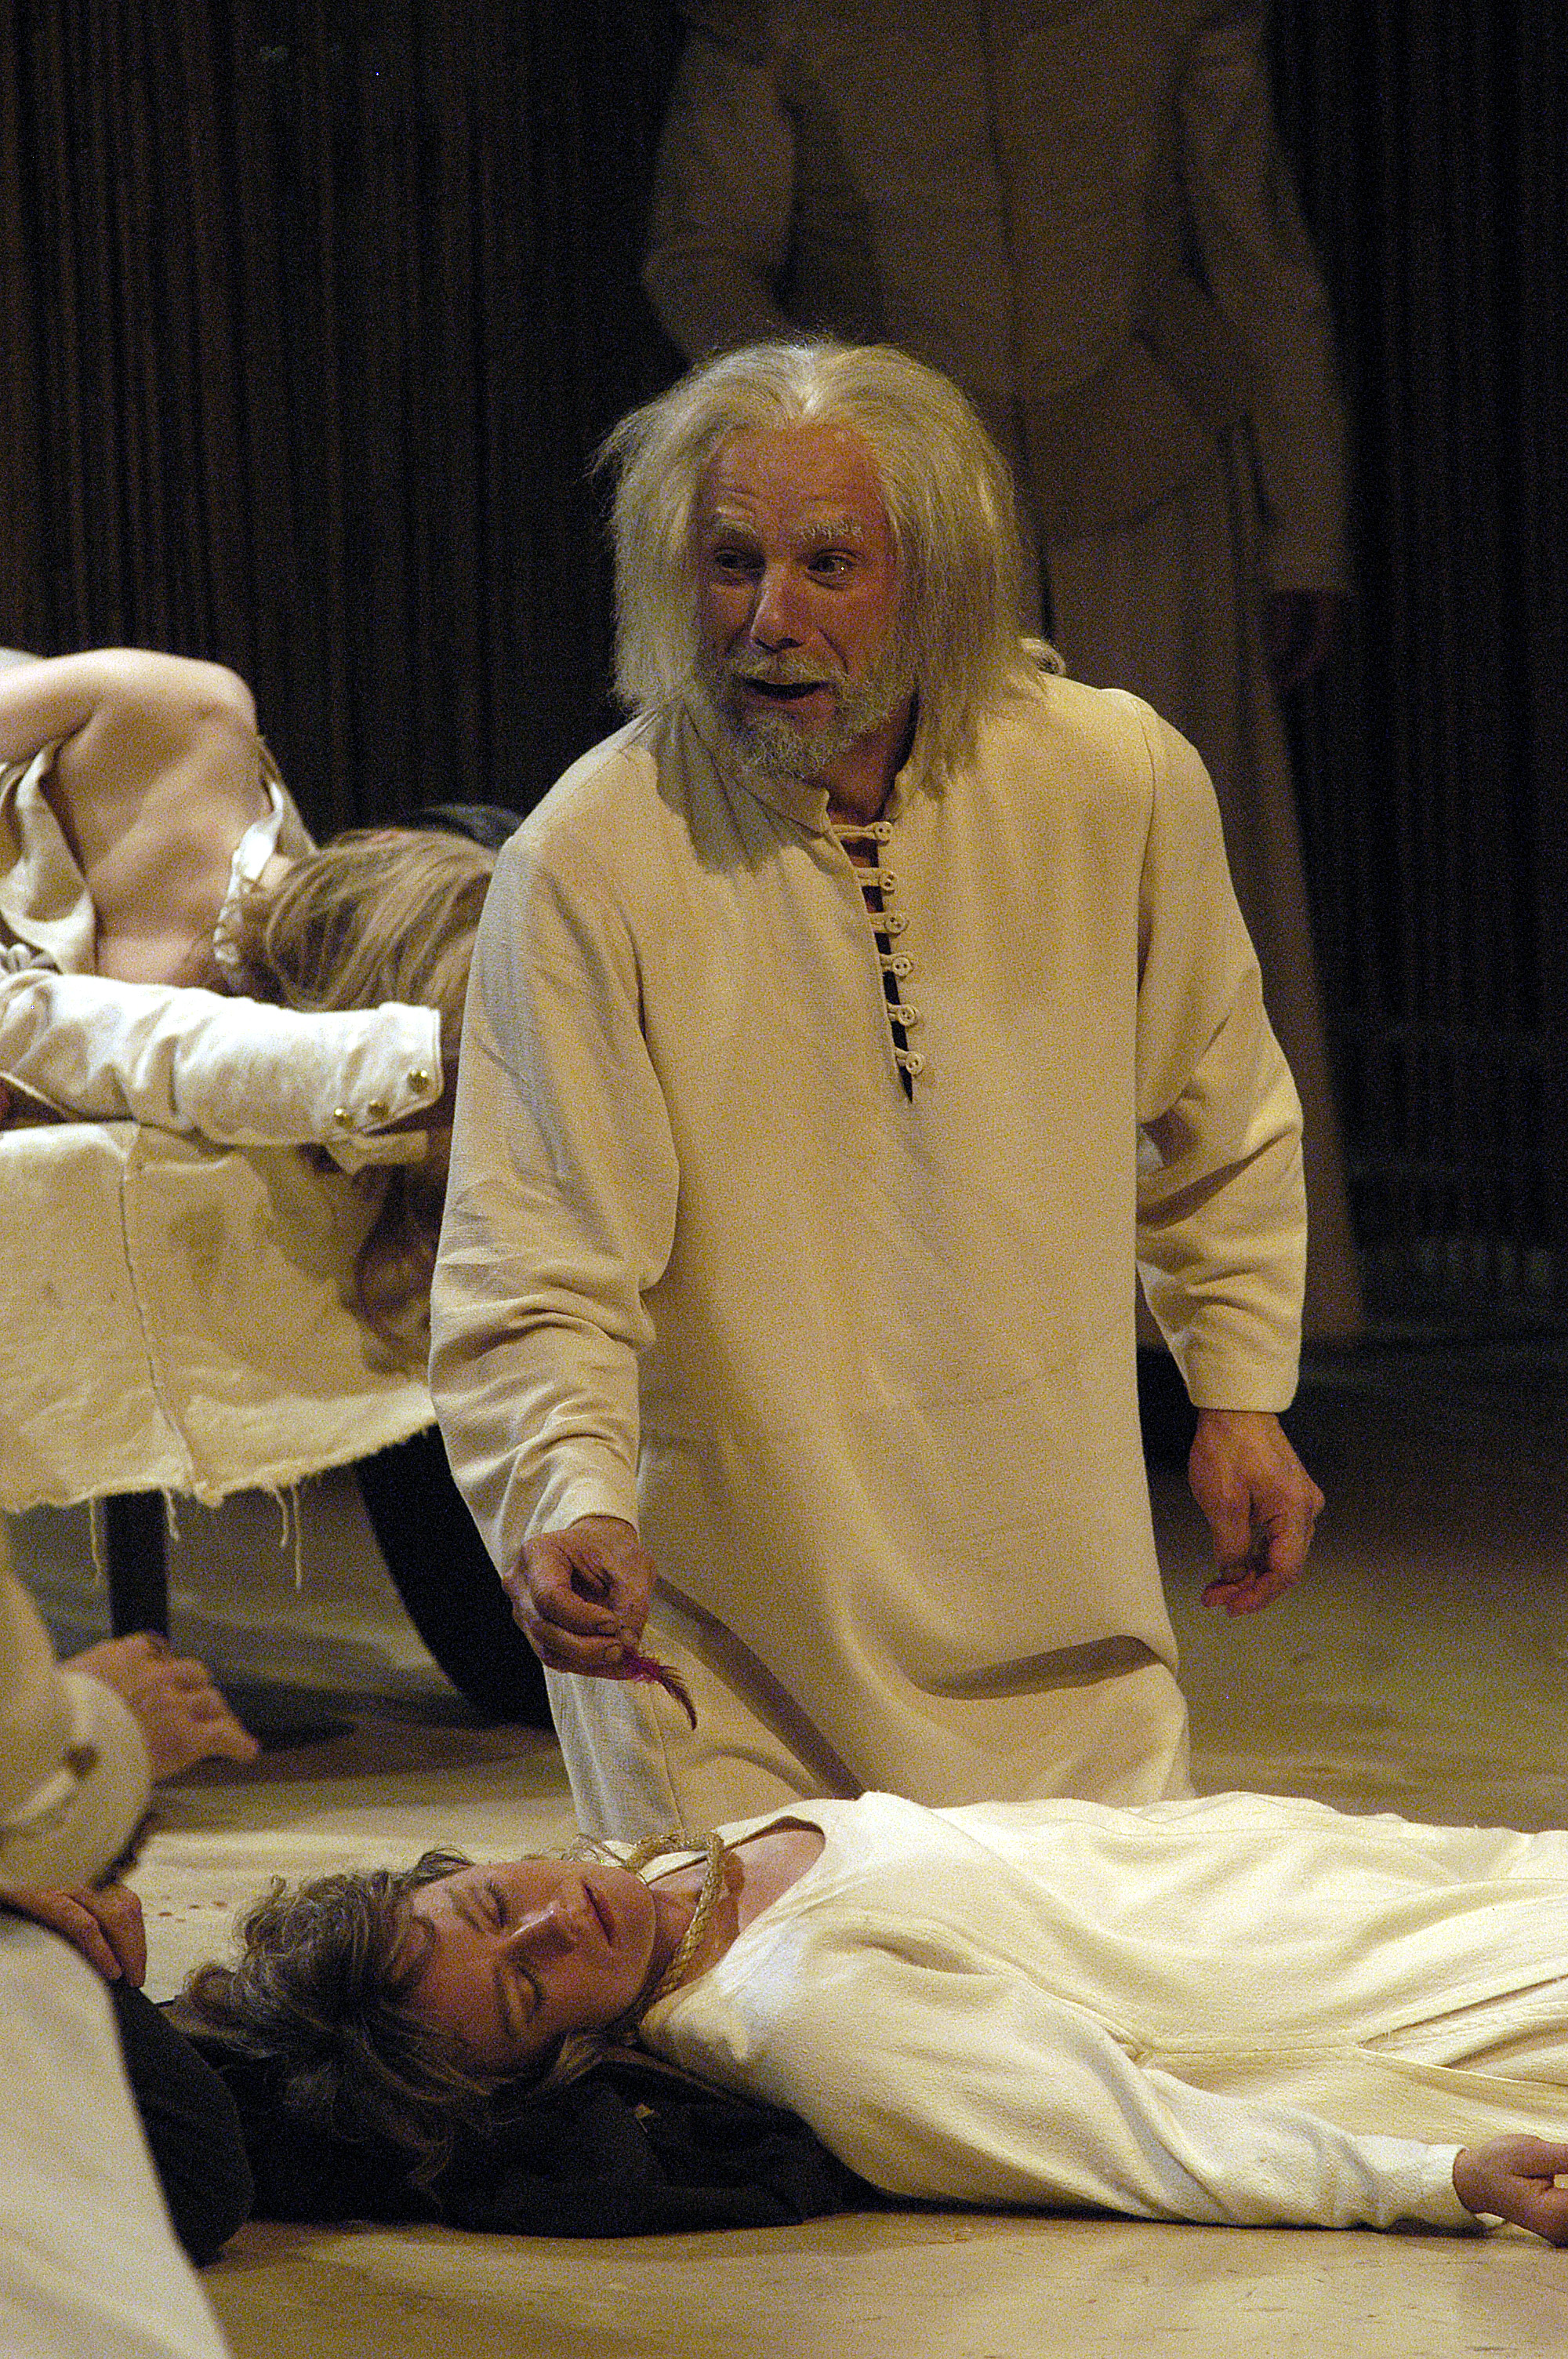 Jonathan Epstein as King Lear grieves over his murdered daughter Cordelia (played by Kristen Wold). King Lear, Shakespeare and Company 2003 Photo by Kevin Sprague